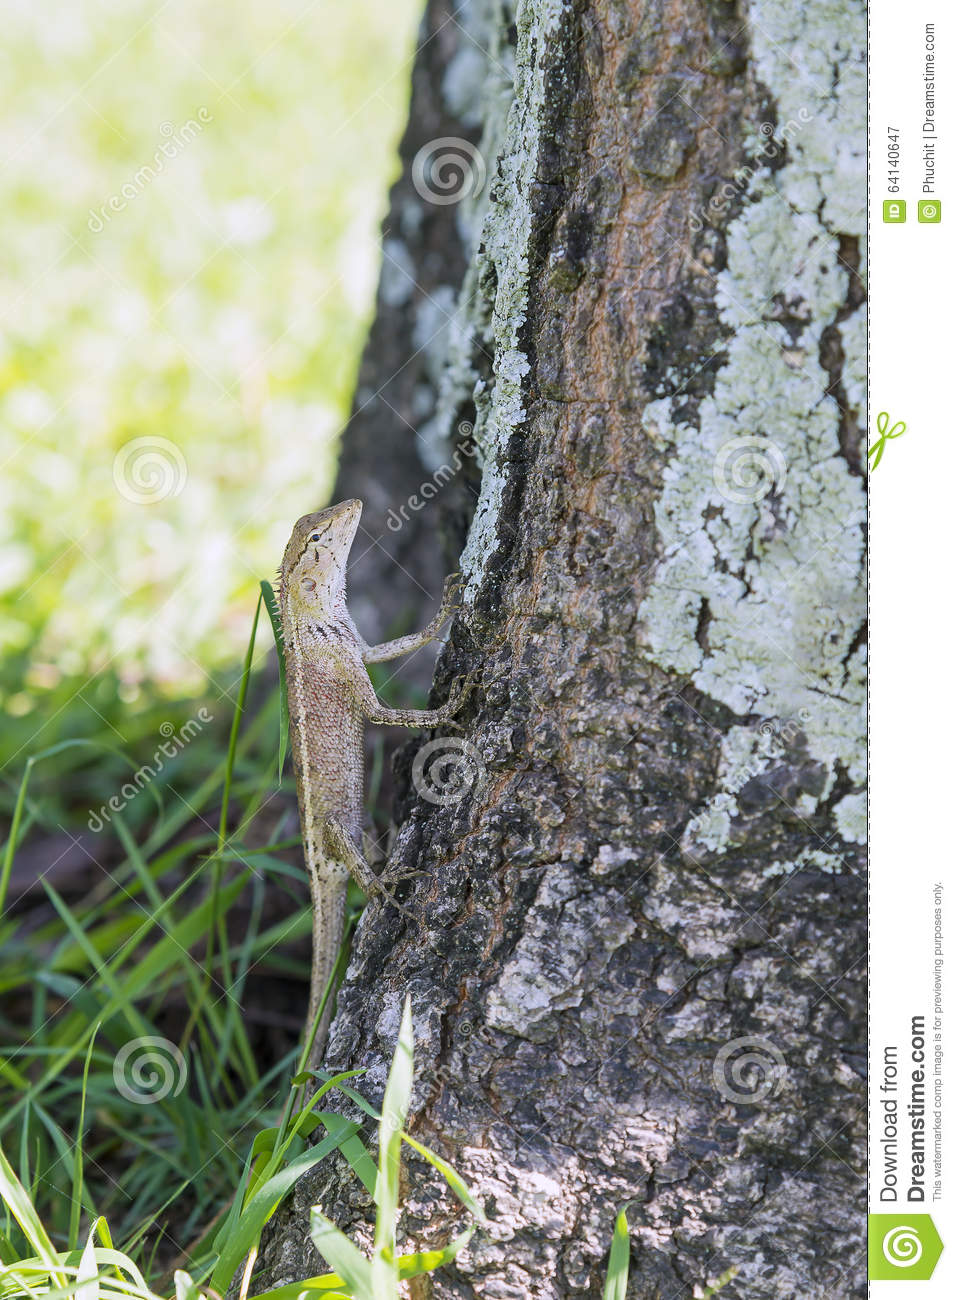 The lizard on the tree